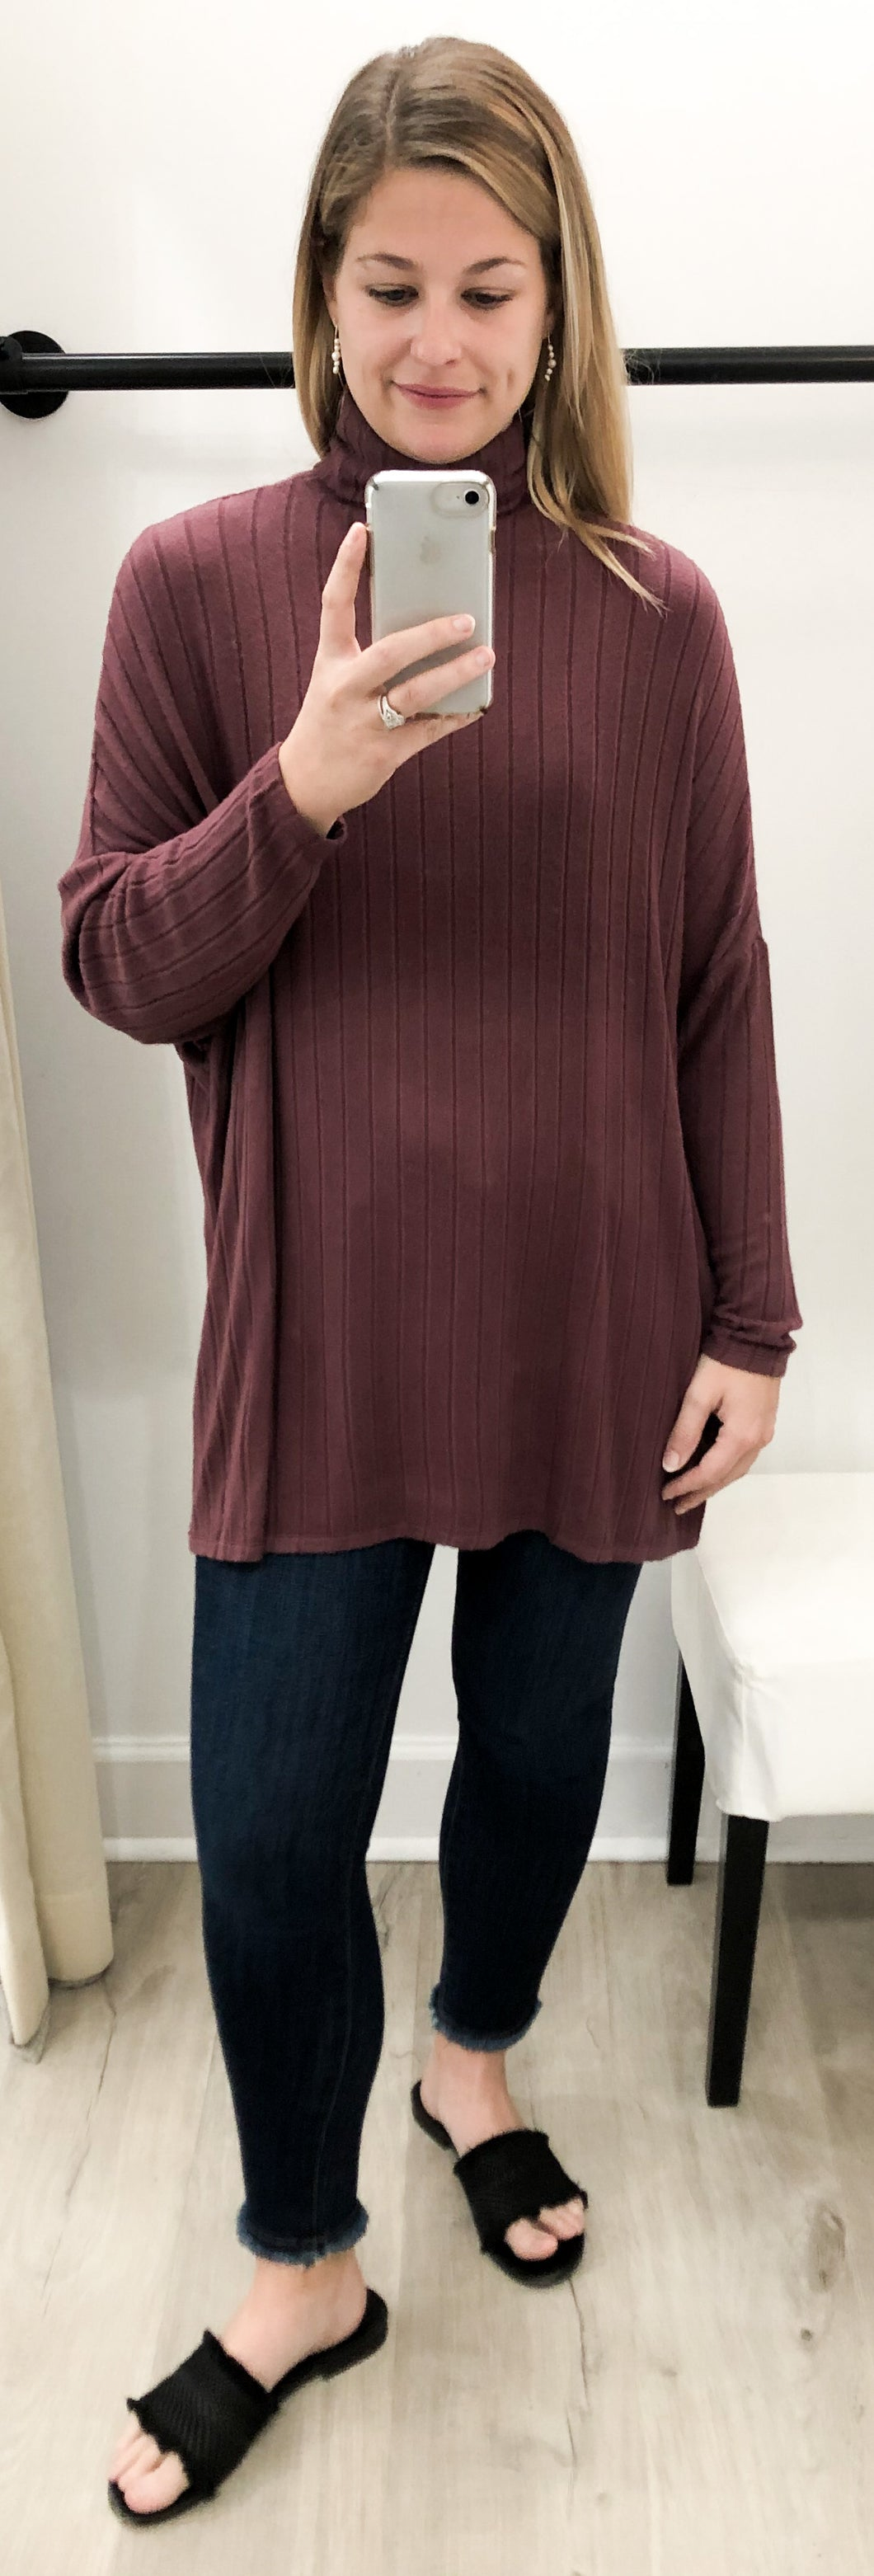 Amy Top in Burgundy